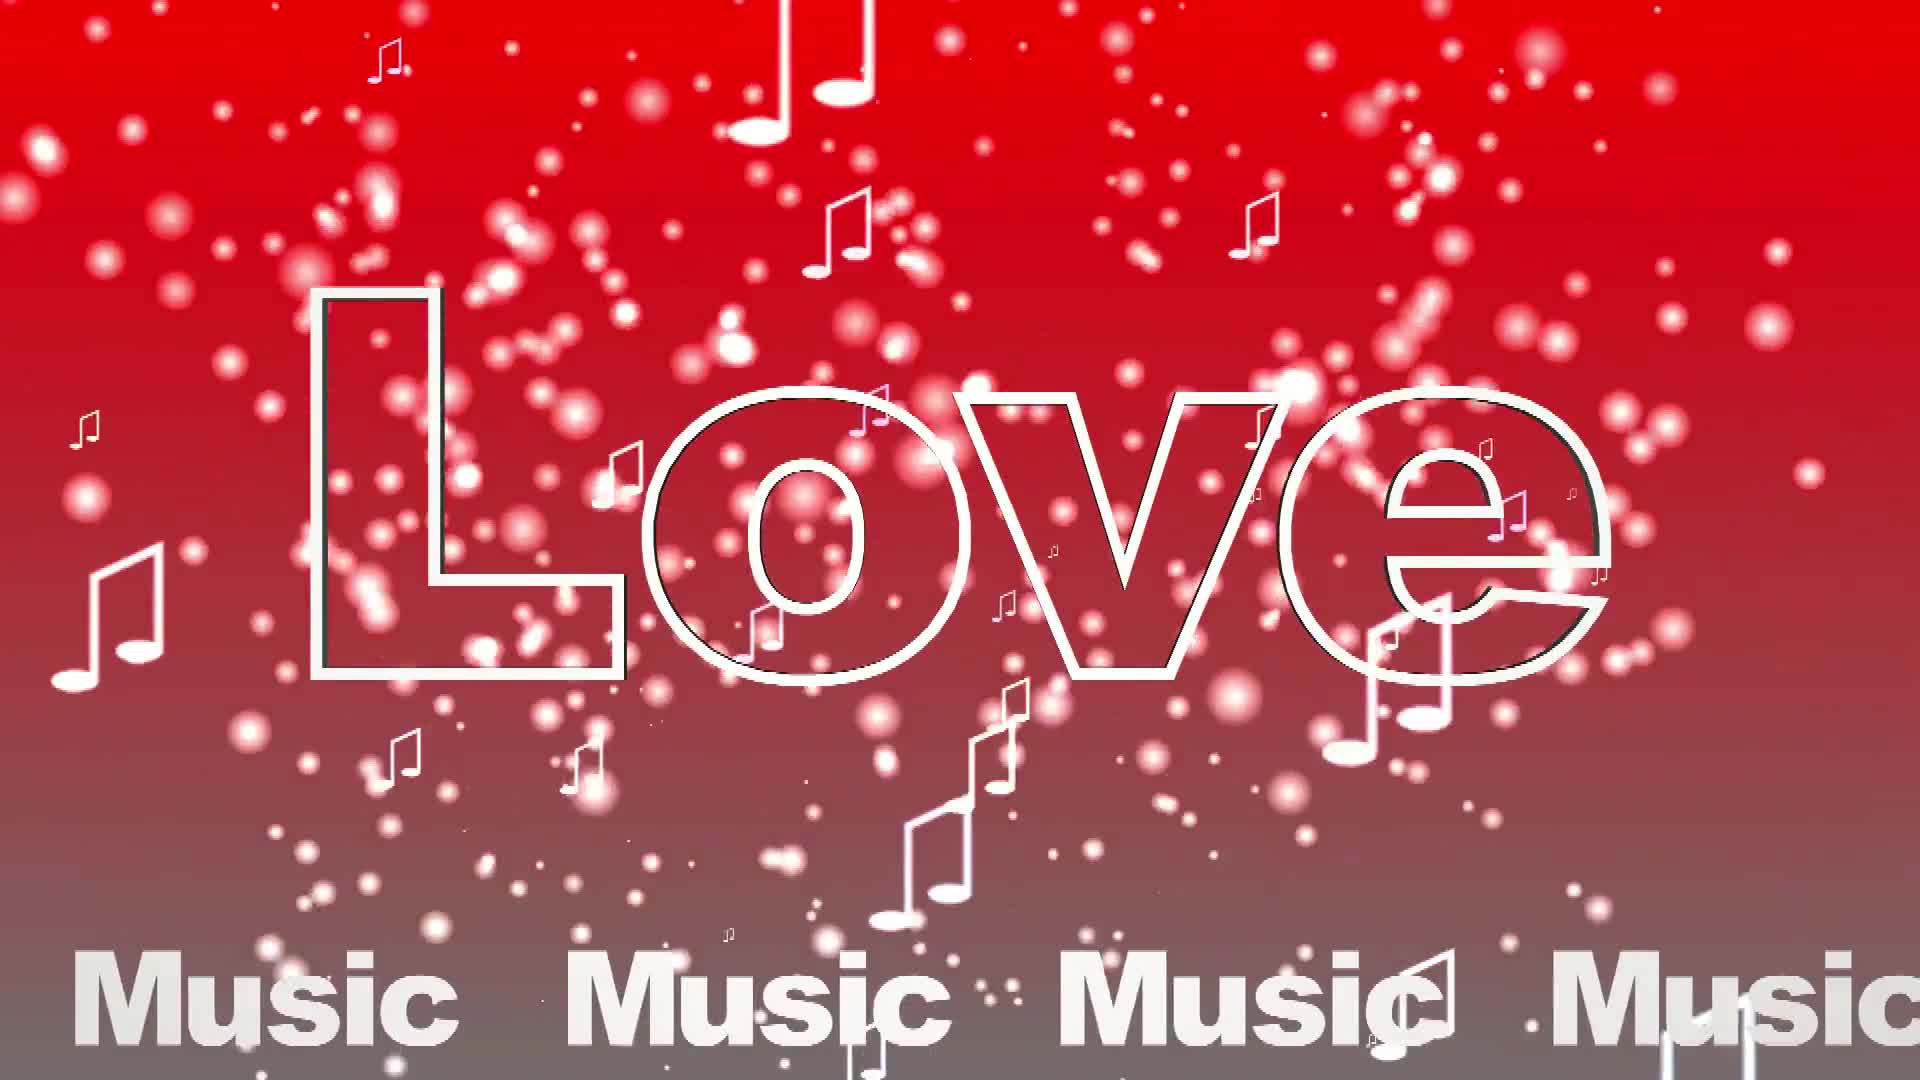 Love music red white show